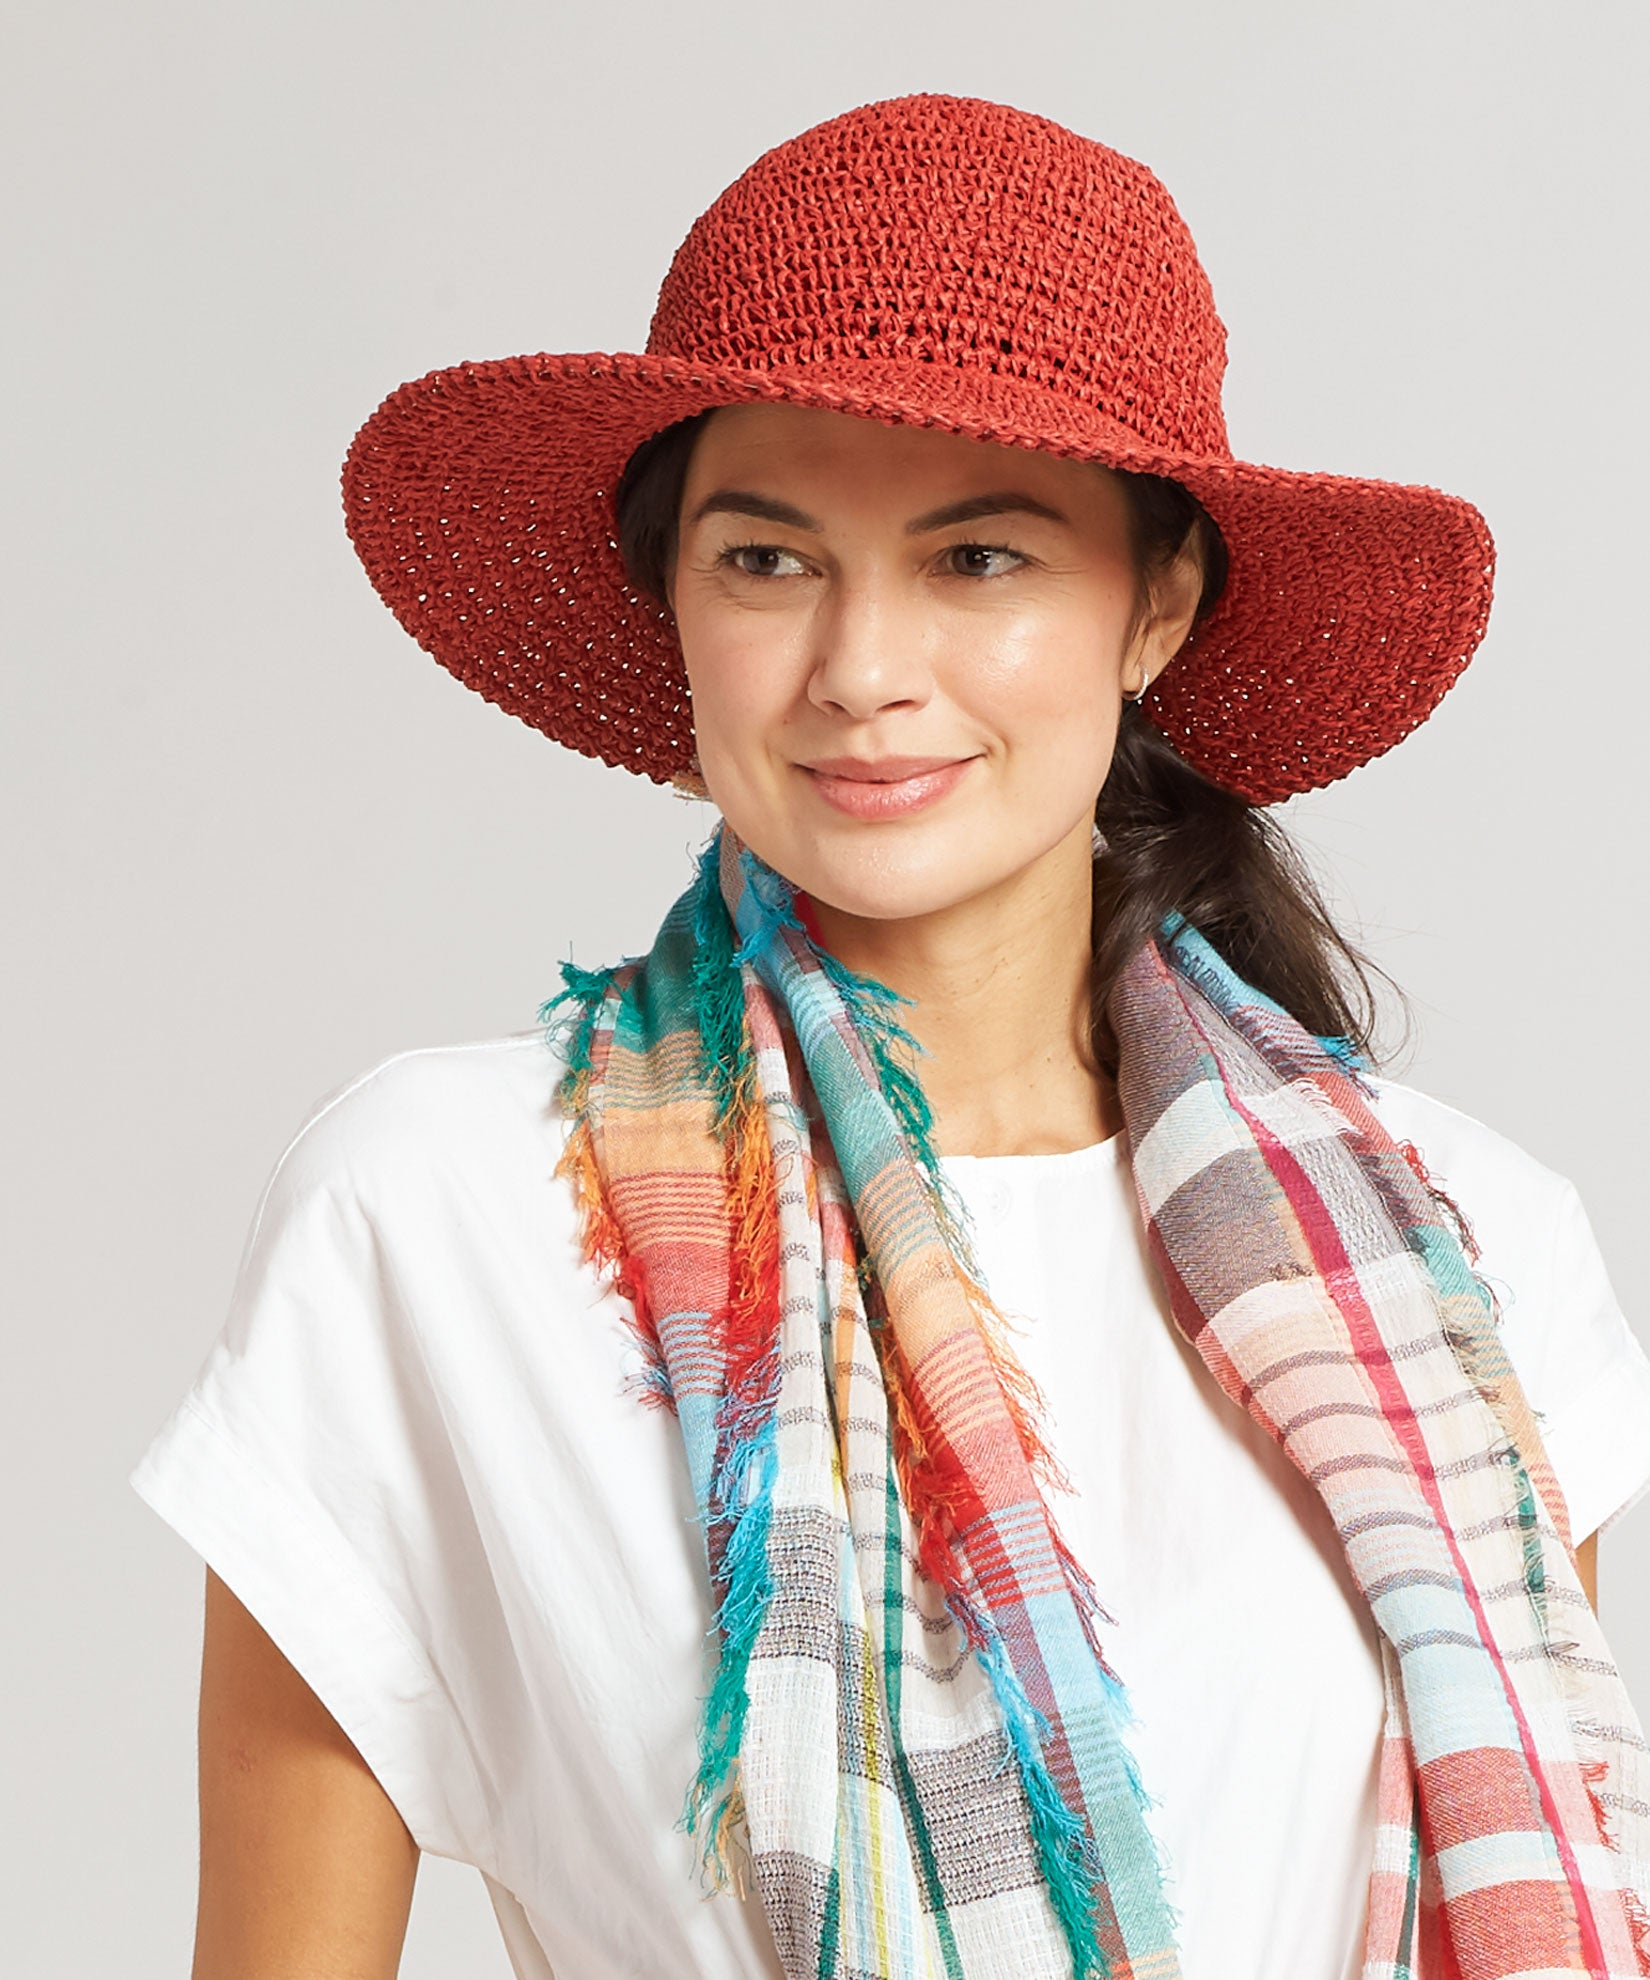 Resort Red - The Packable Crochet Hat